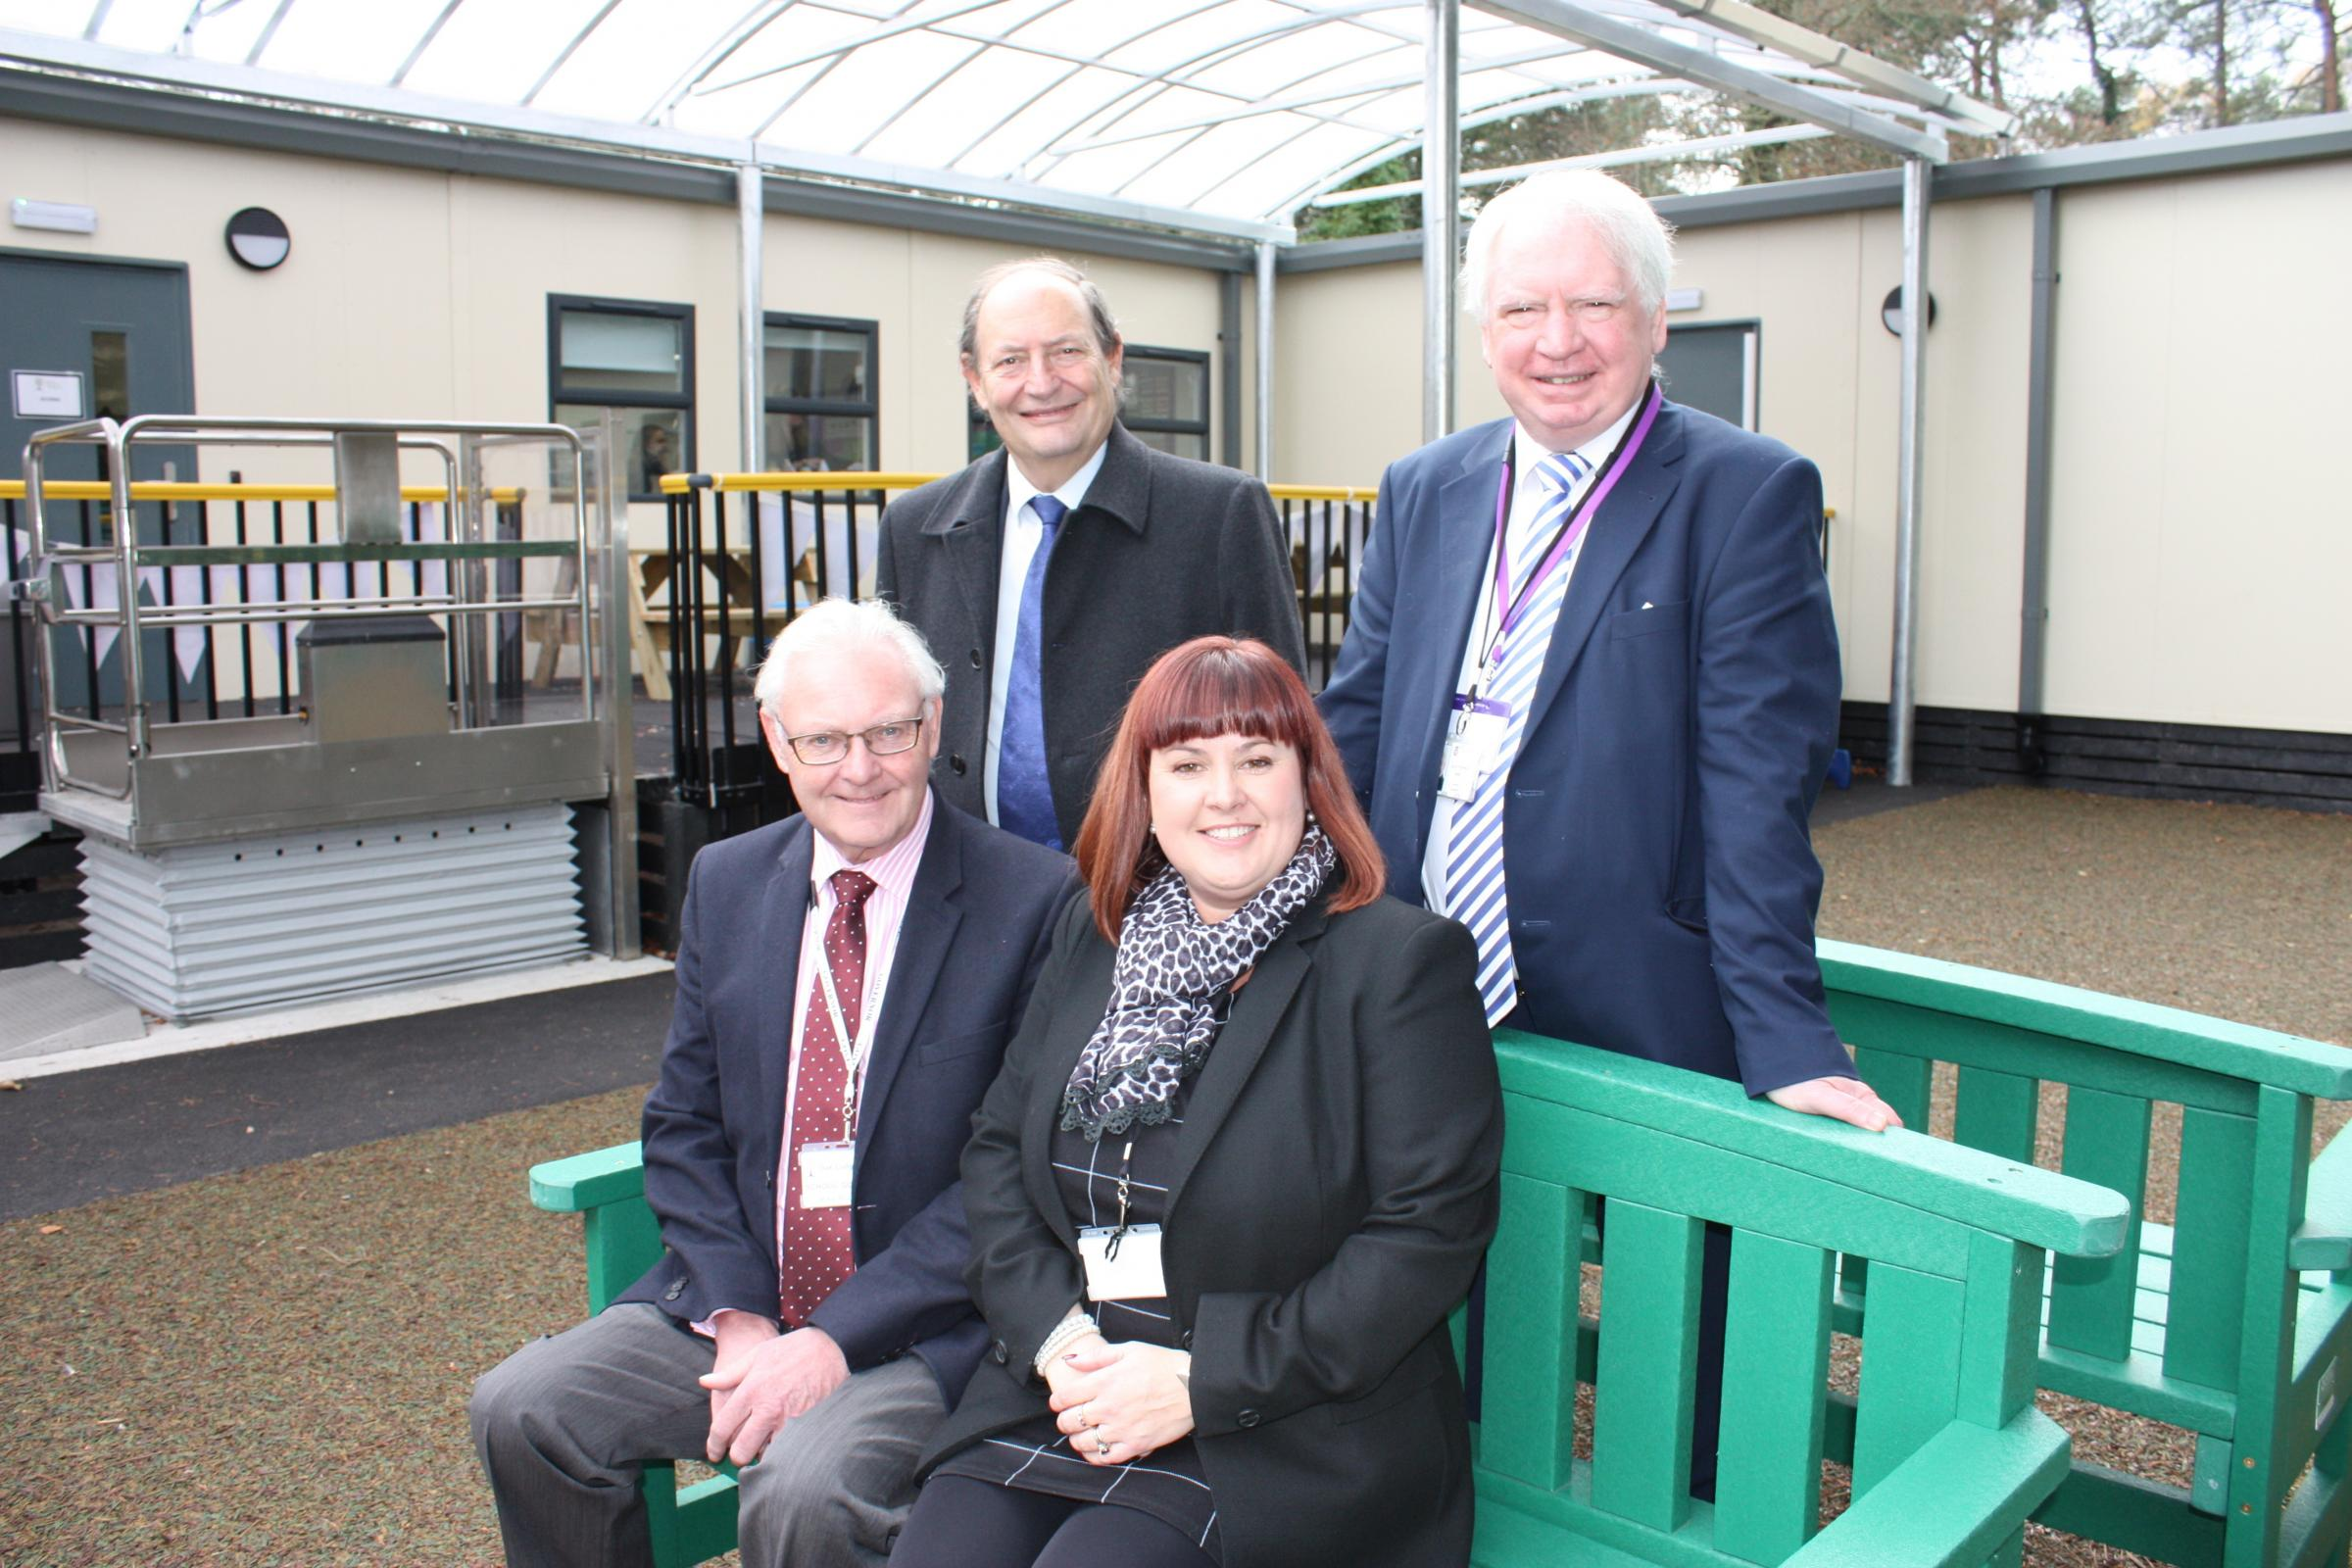 Oak Lodge Expansion - Front (L-R): Mike Robinson, Chair of Governors, Sharon Burt, Head Teacher. Rear (L-R): Cllr Keith Mans, Cllr Stephen Reid